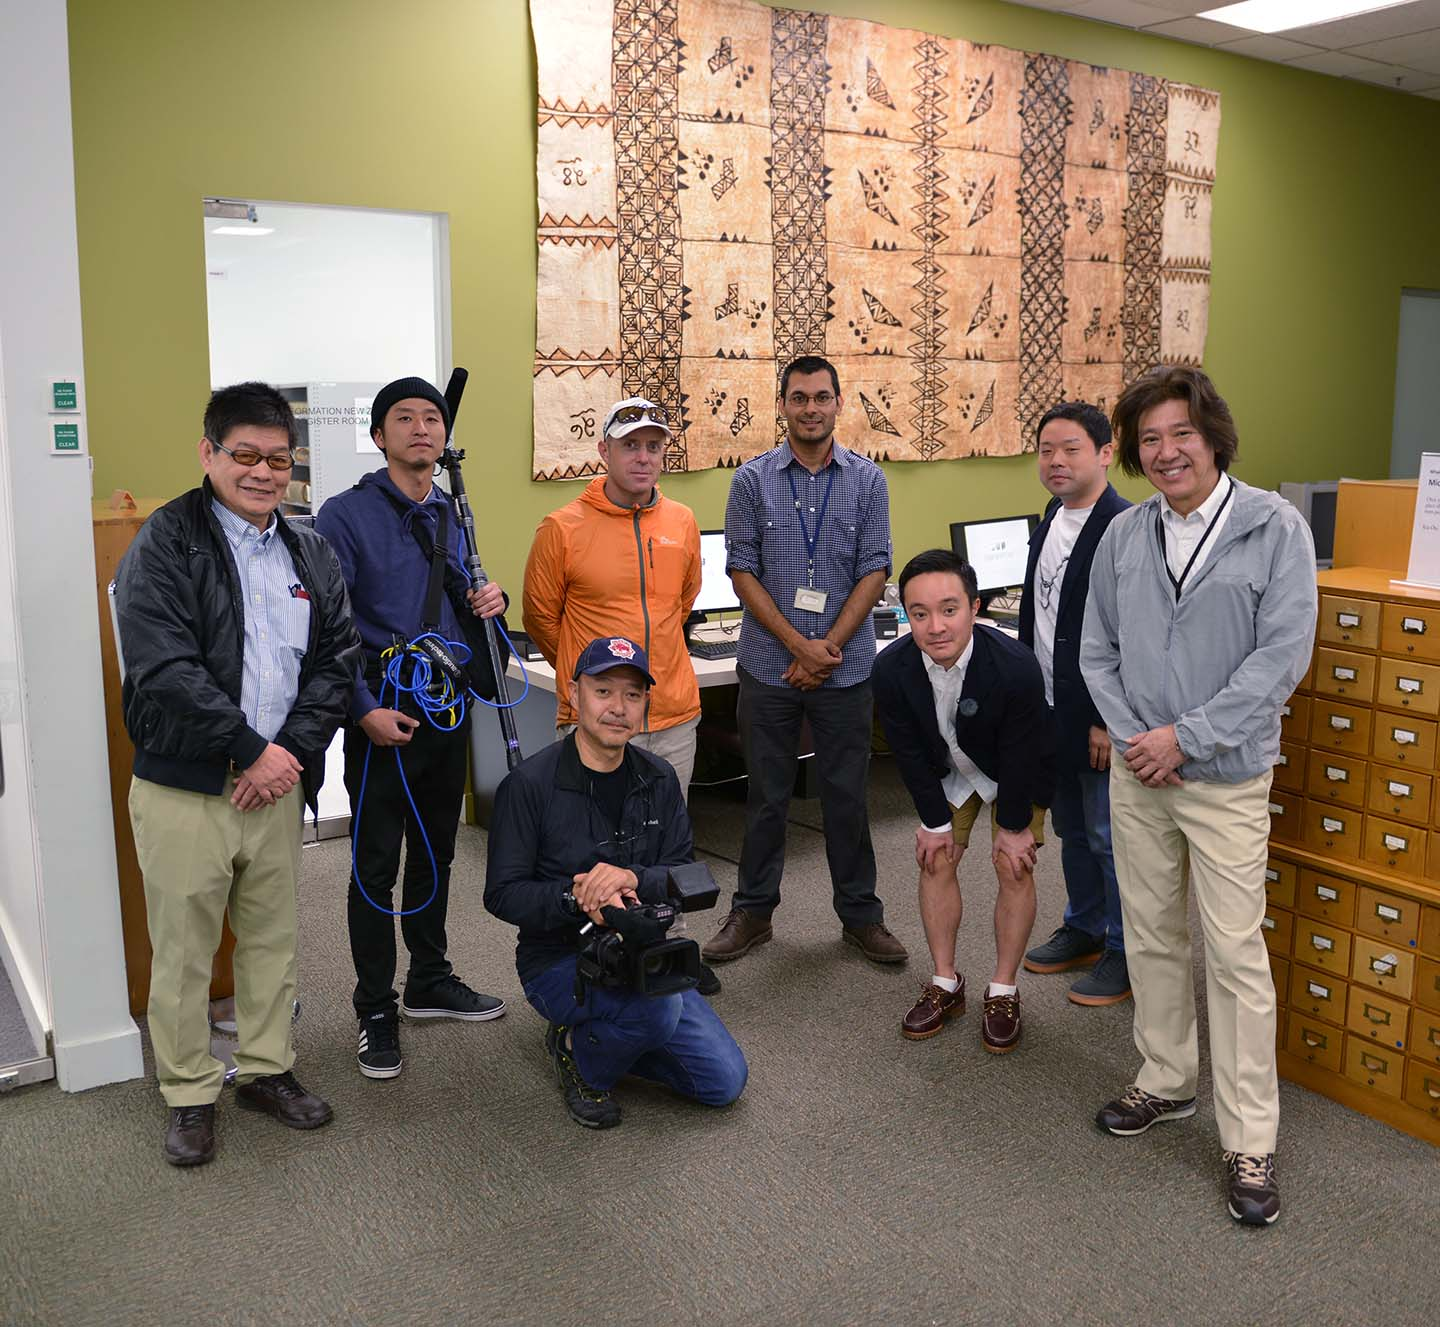 A photo showing Japanese TV film crew with an archivist